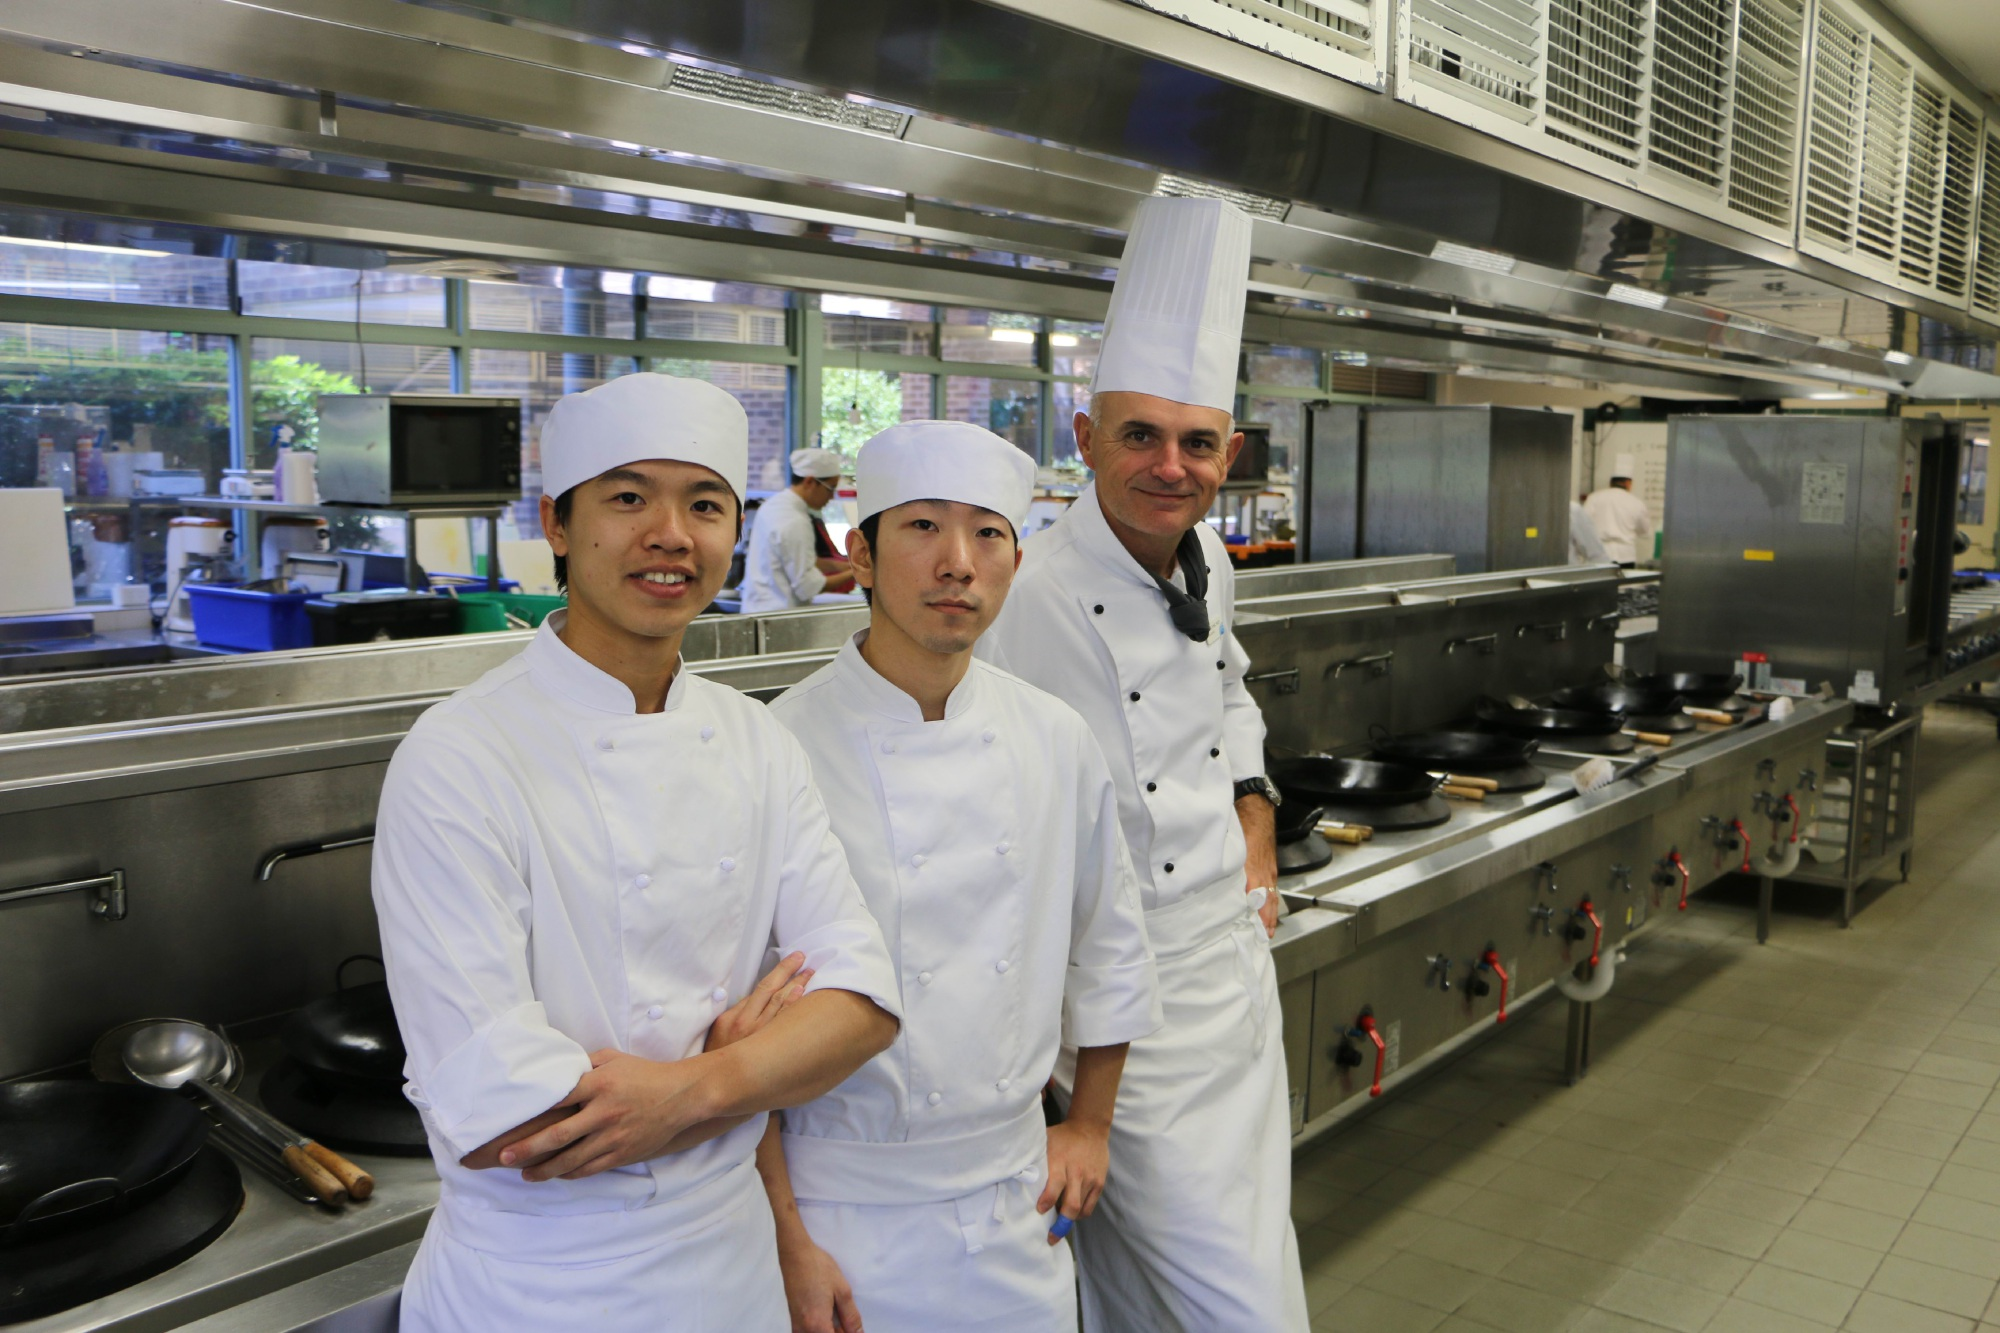 Josh Chen, Max Kim and Denis Boulet are preparing to take their skills to the international stage.